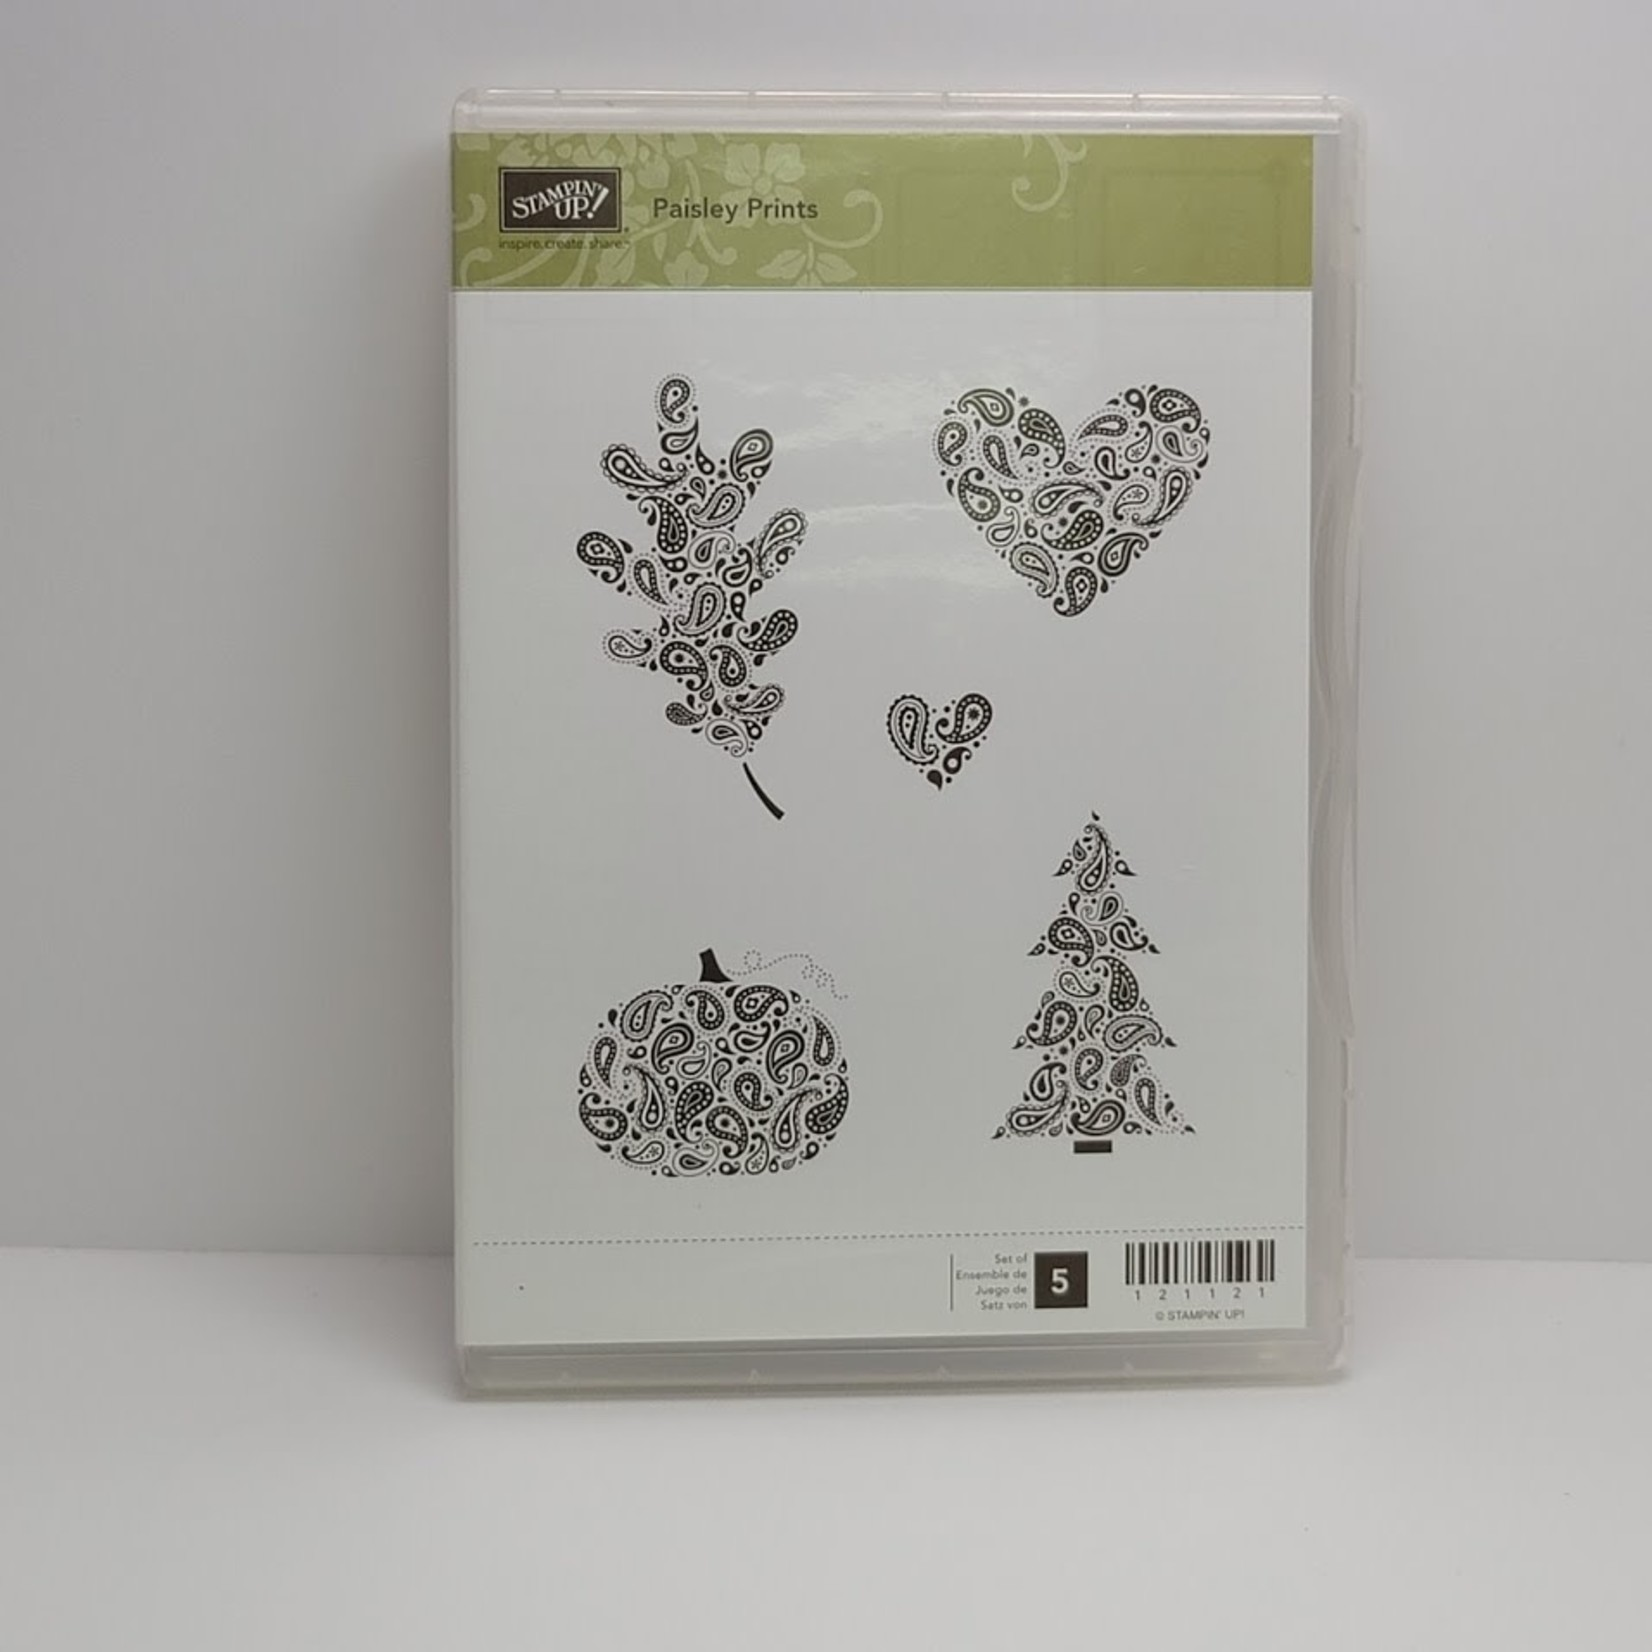 Stampin' Up Stampin' up - Cling Stamps - Paisley Prints